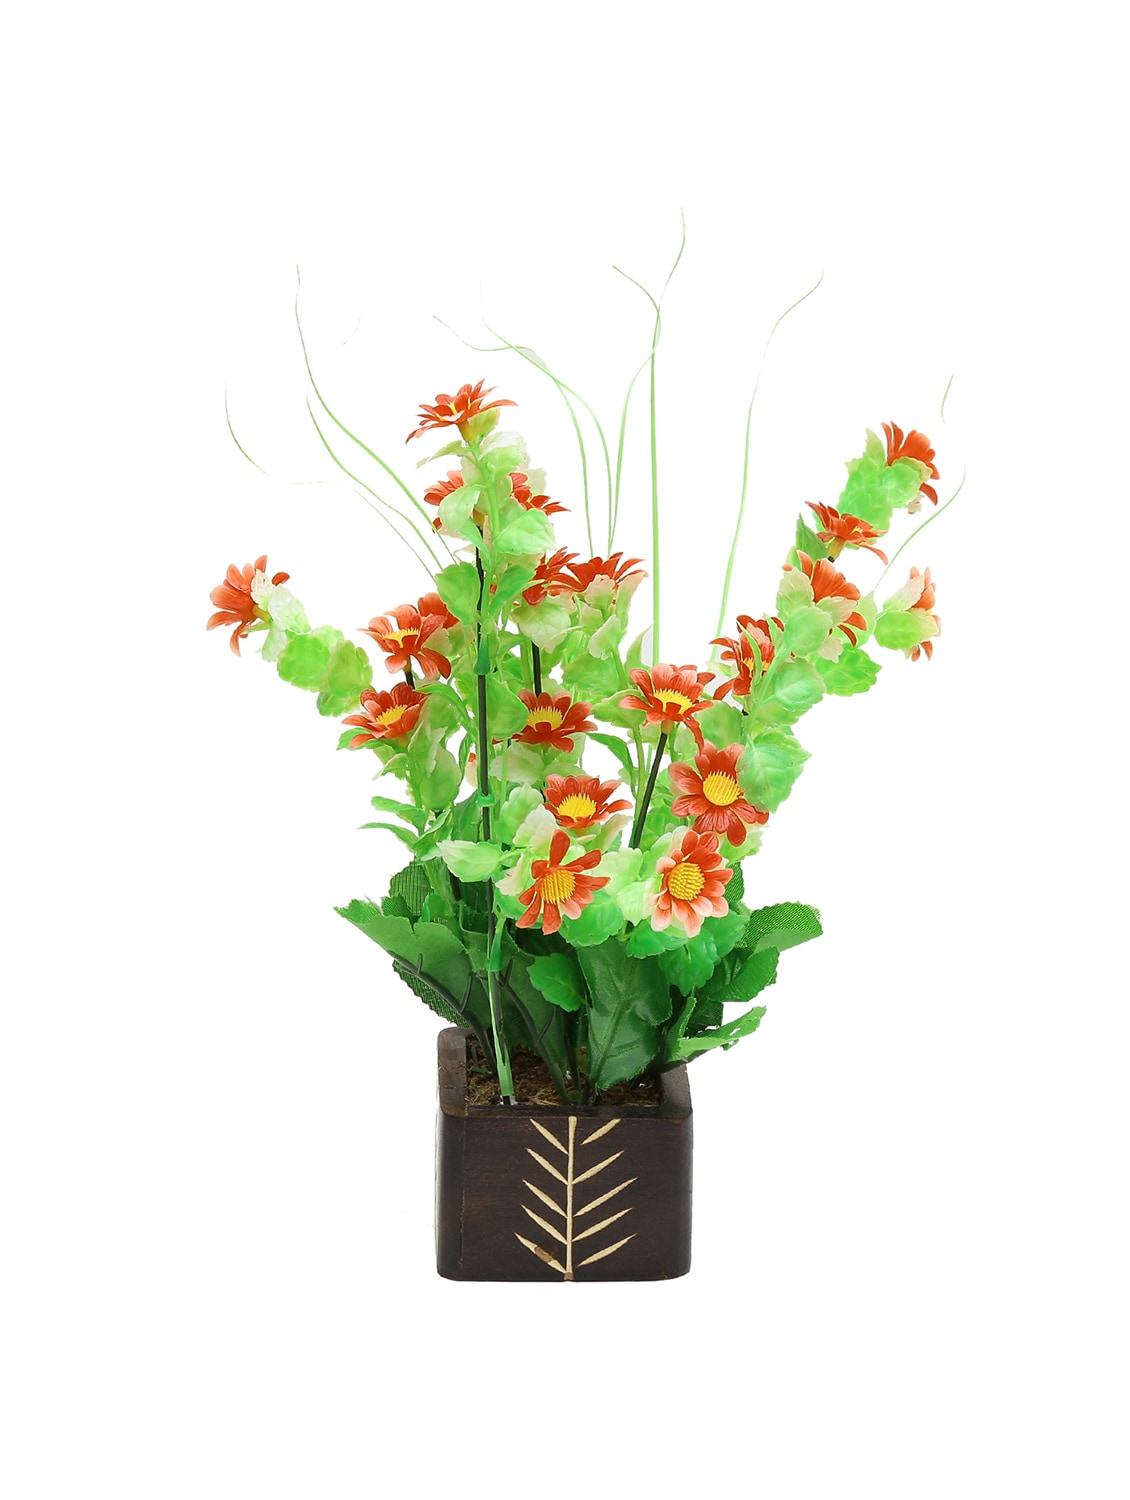 Random Artificial Potted Plant With Red Daisy Flowers By Online Ping For Indoor Plants In India 12818957